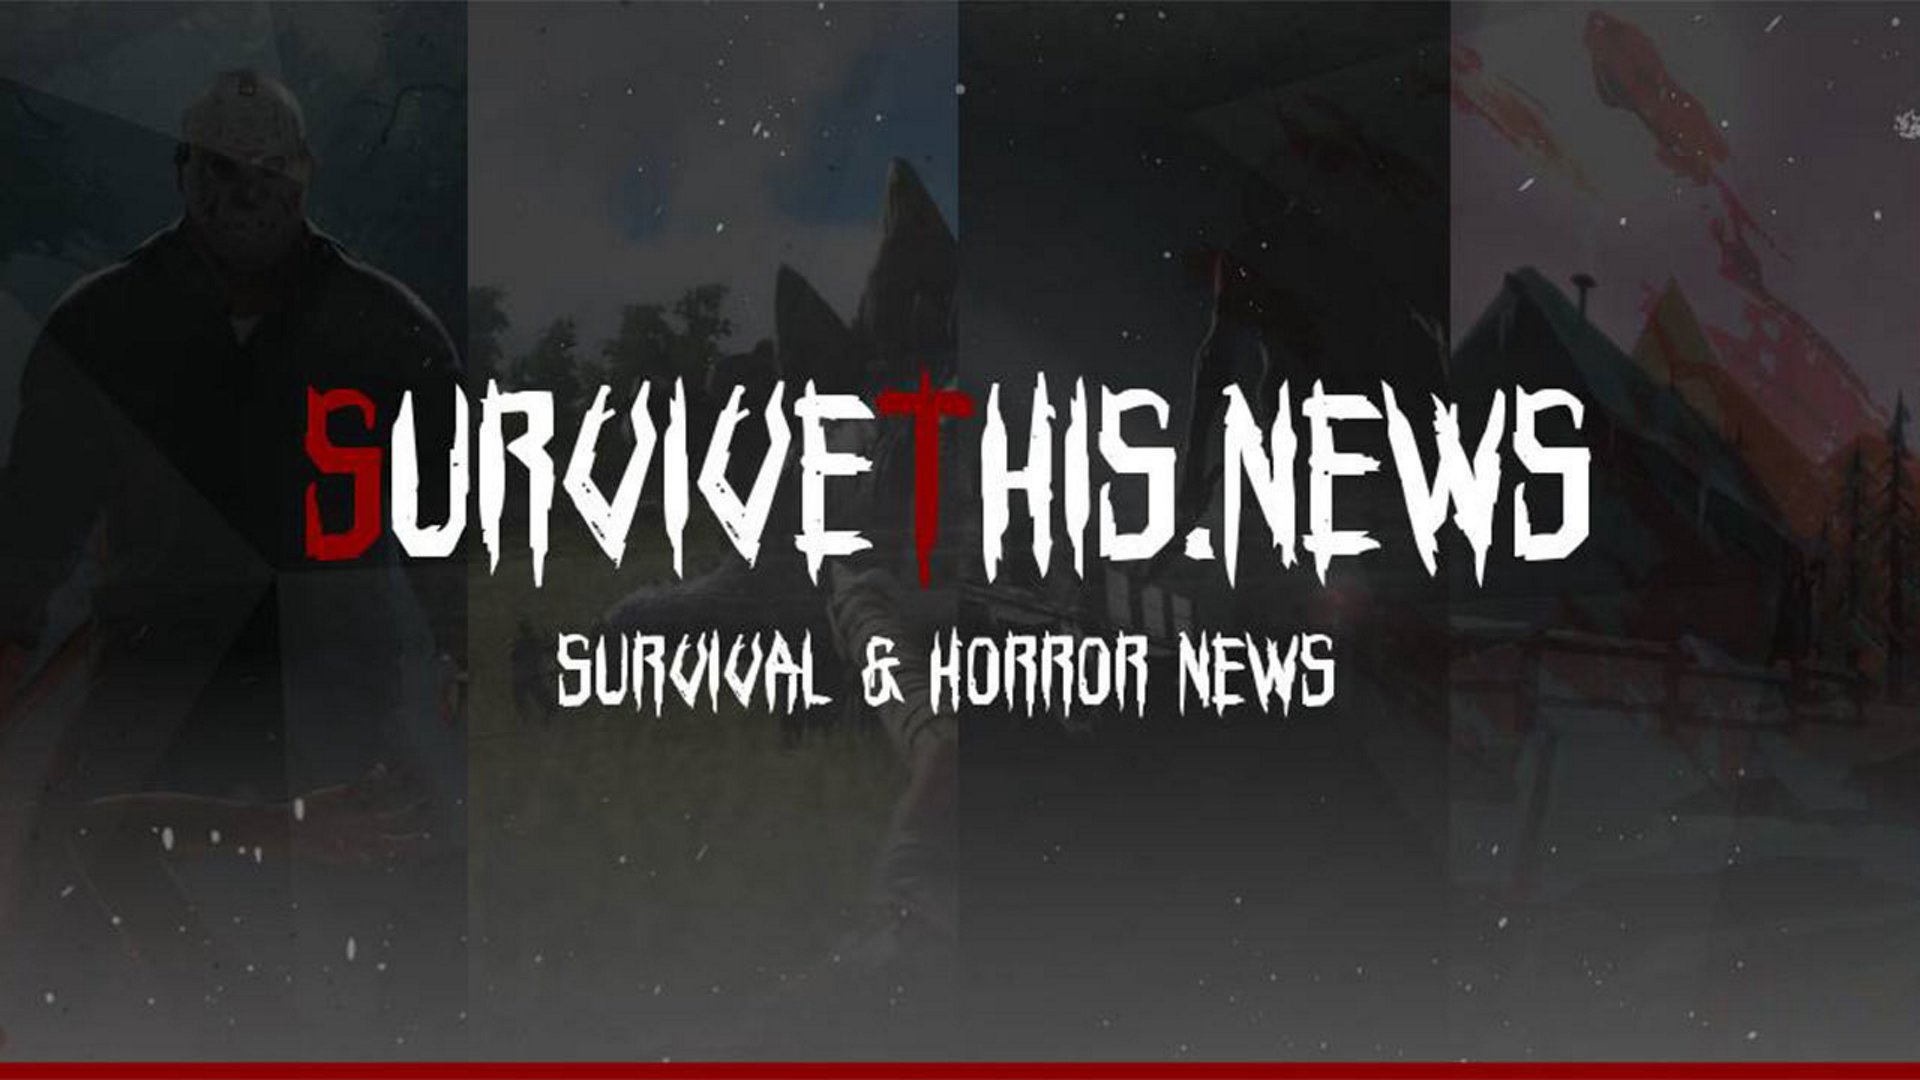 Survivethis - Survival-News about DayZ, H1Z1, ARK & Co